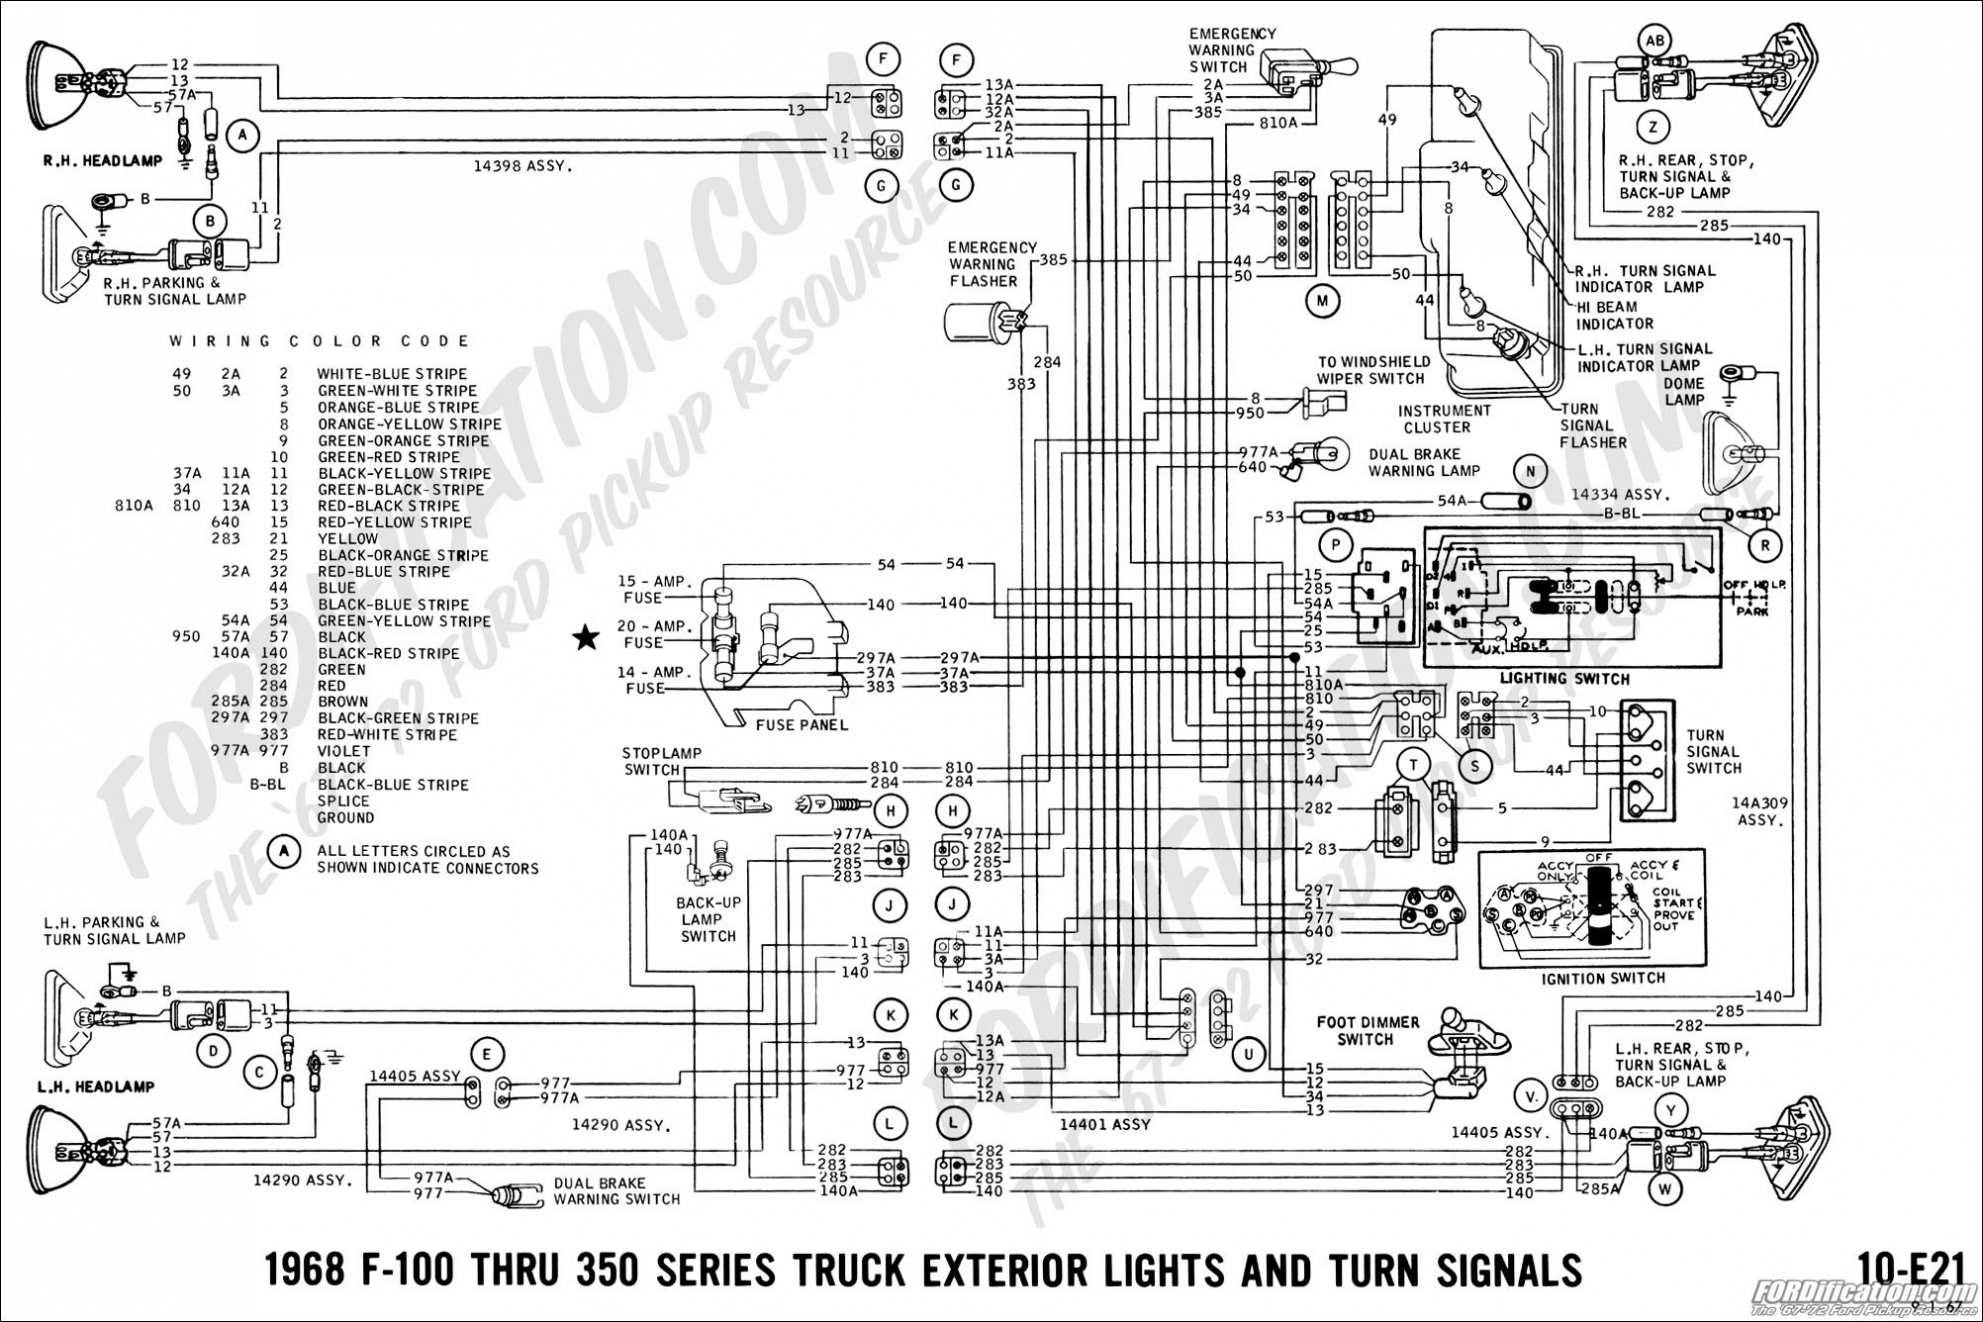 Trailer Breakaway Switch Wiring Diagram – Brake Switch Wiring - Trailer Wiring Diagram With Breakaway Switch